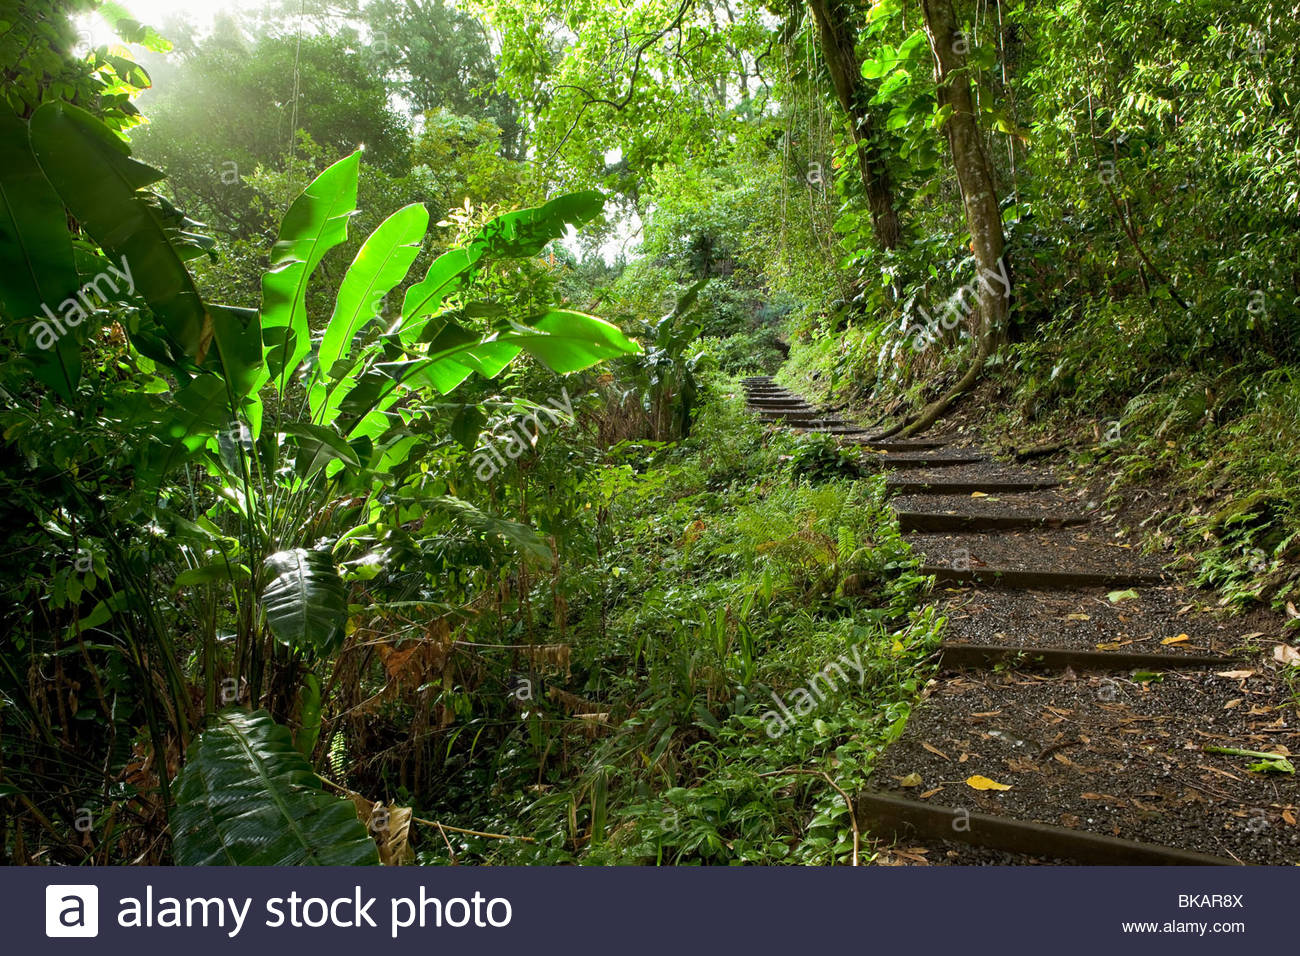 The Waikamoi Nature Trail through rainforest on the road to Hana on the island of Maui in the State of Hawaii USA - Stock Image